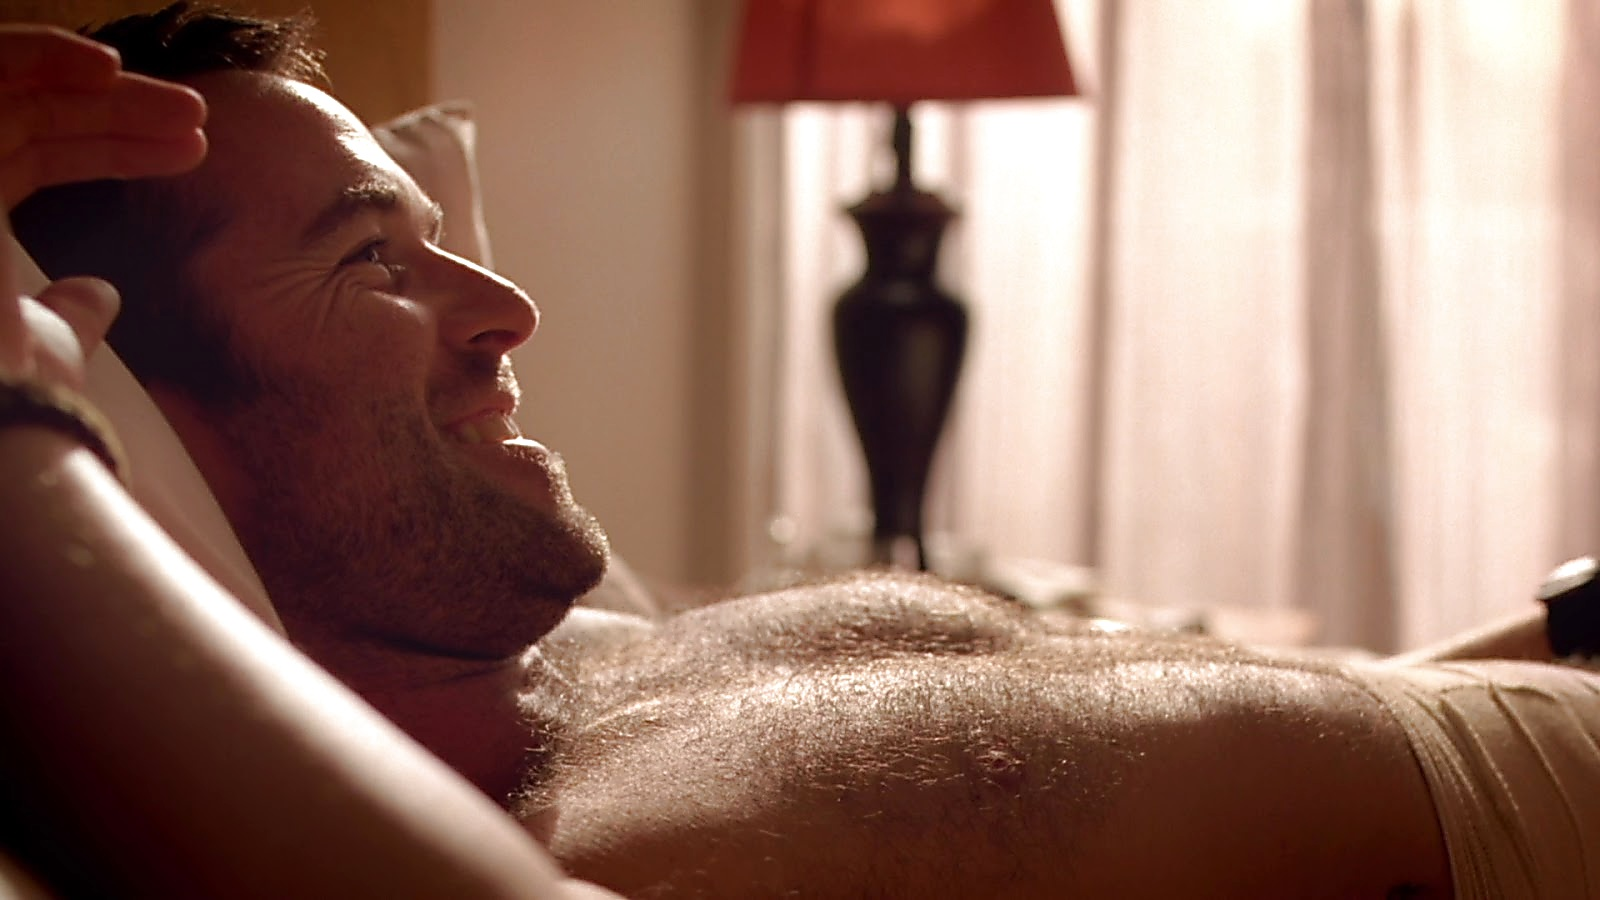 Sullivan Stapleton sexy shirtless scene March 1, 2020, 1pm